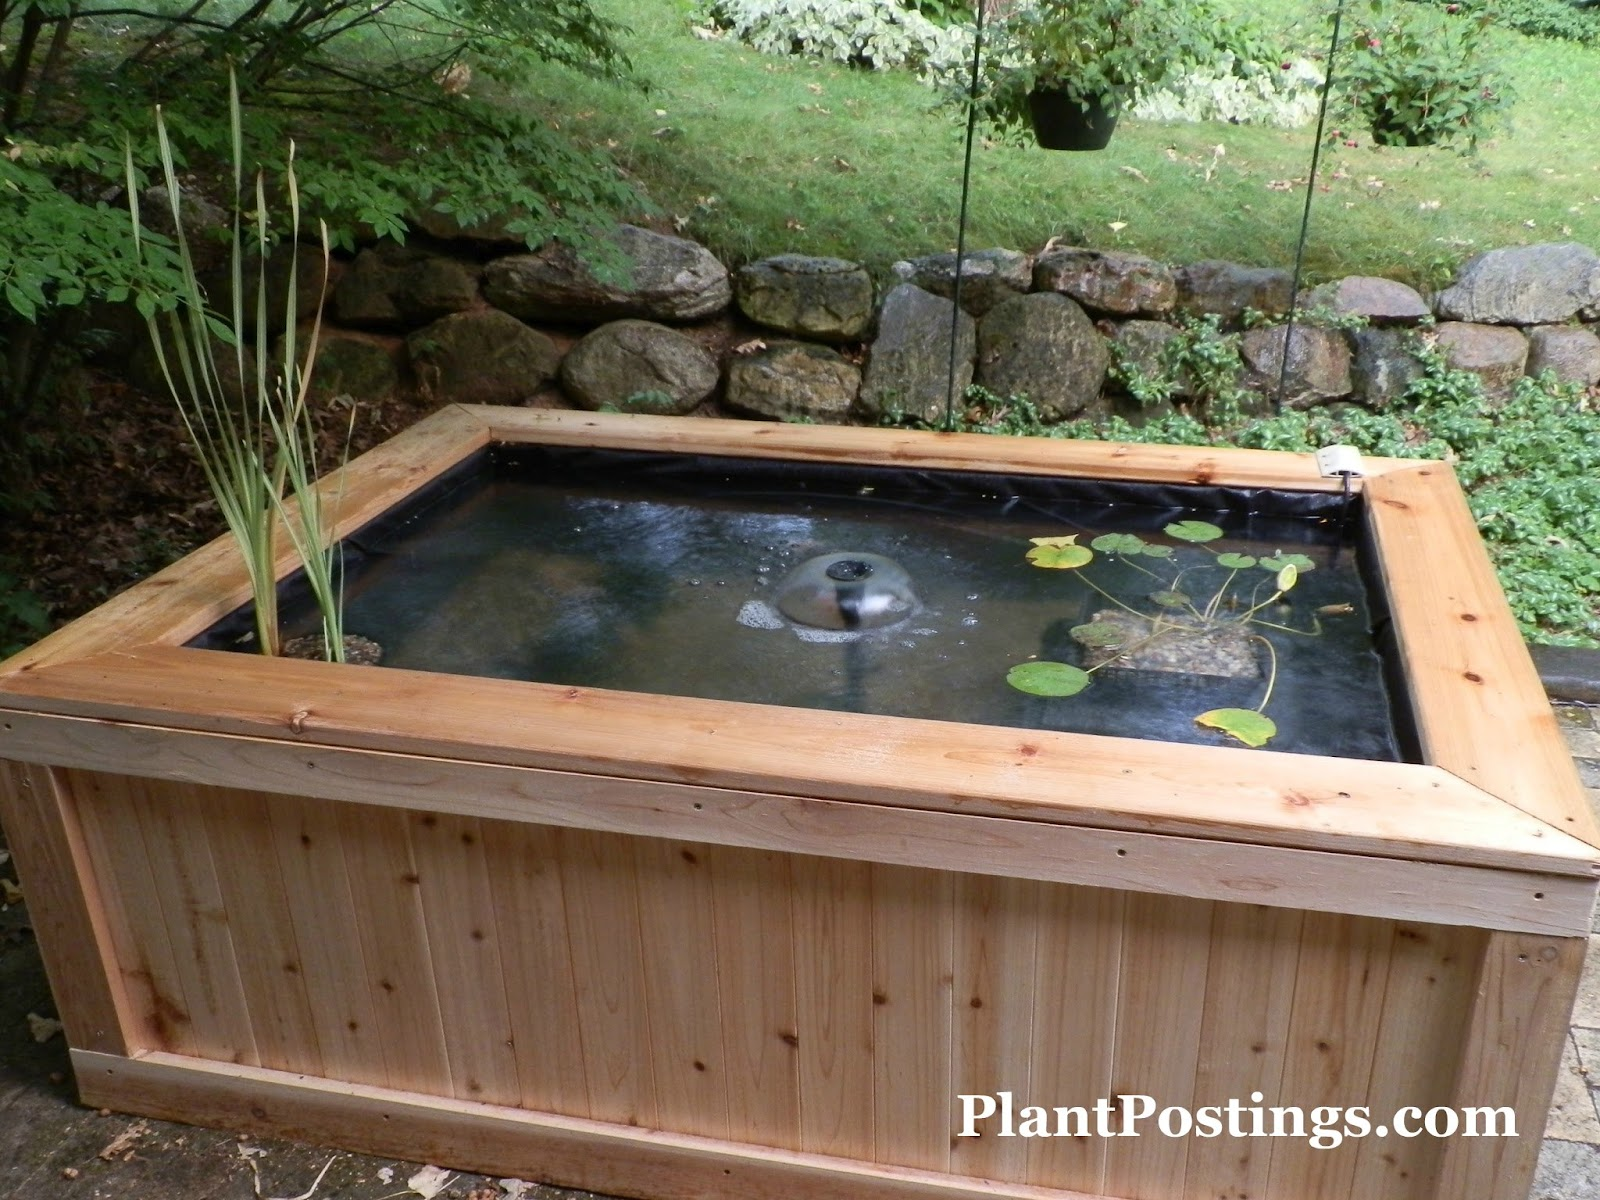 Plantpostings how to make an above ground pond for Making a garden pond